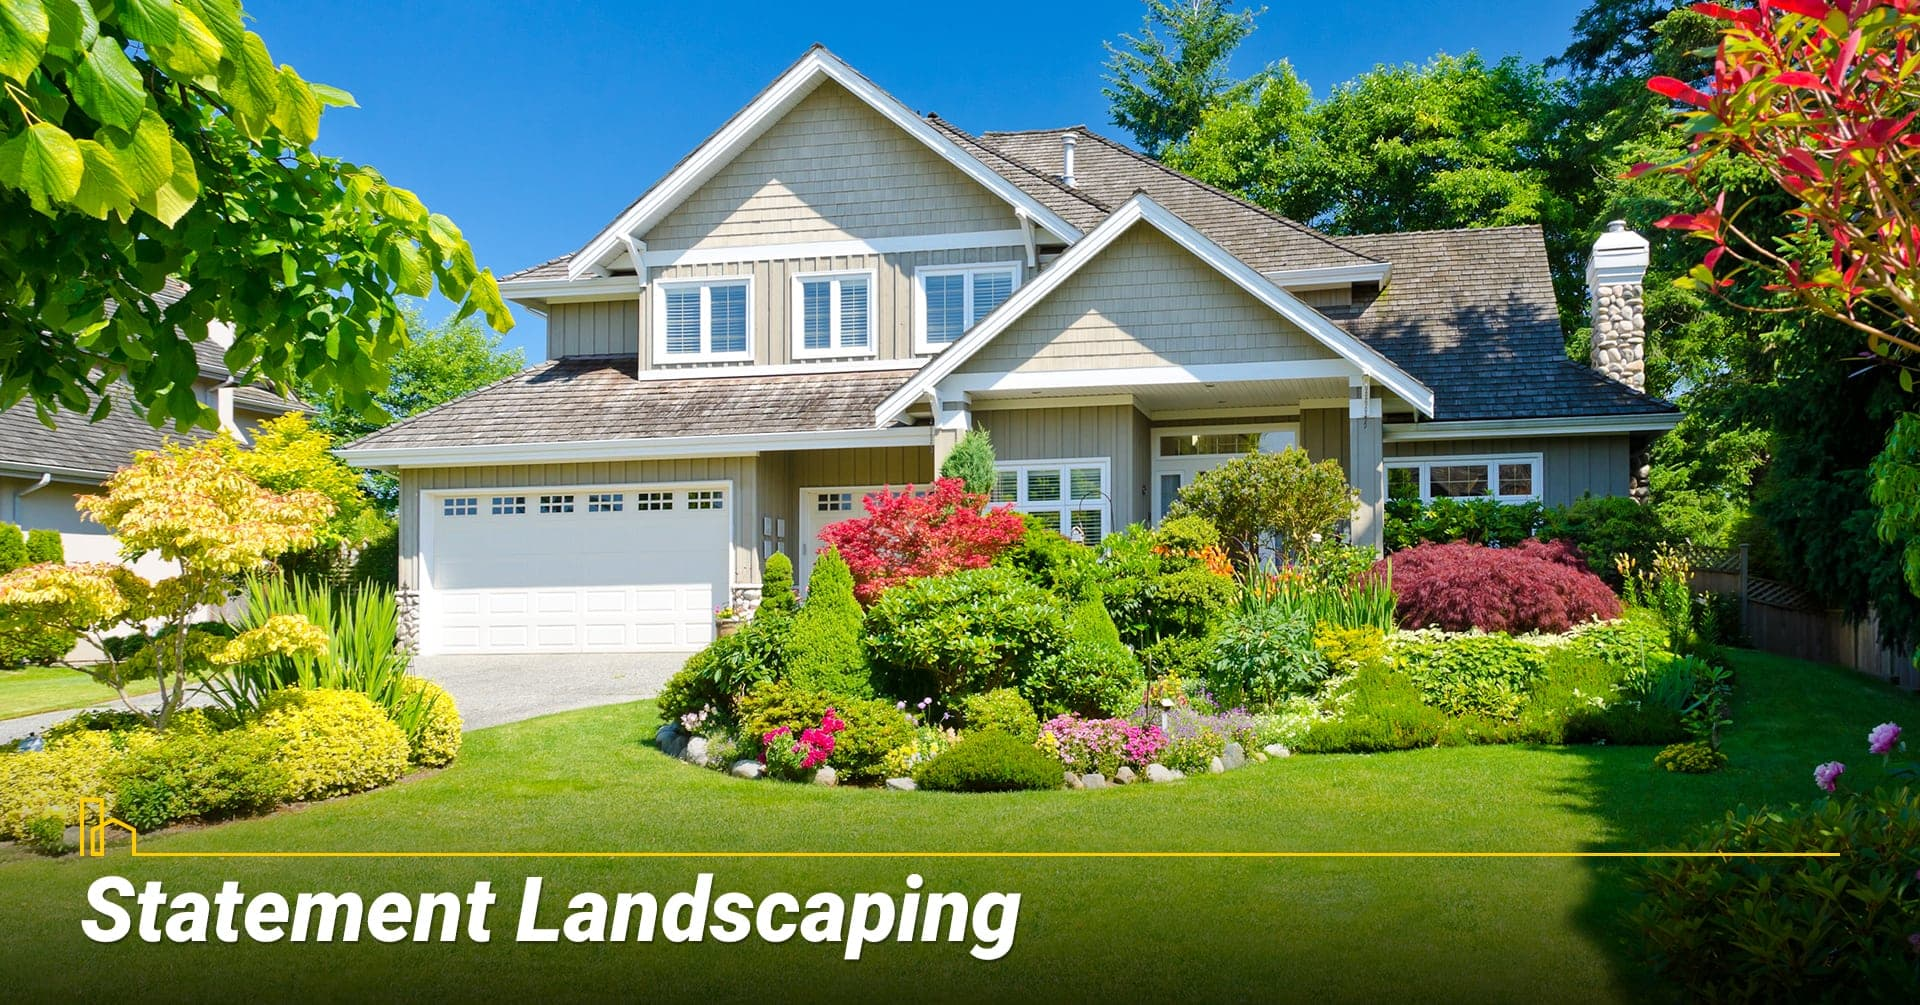 Statement Landscaping, add beautiful landscaping